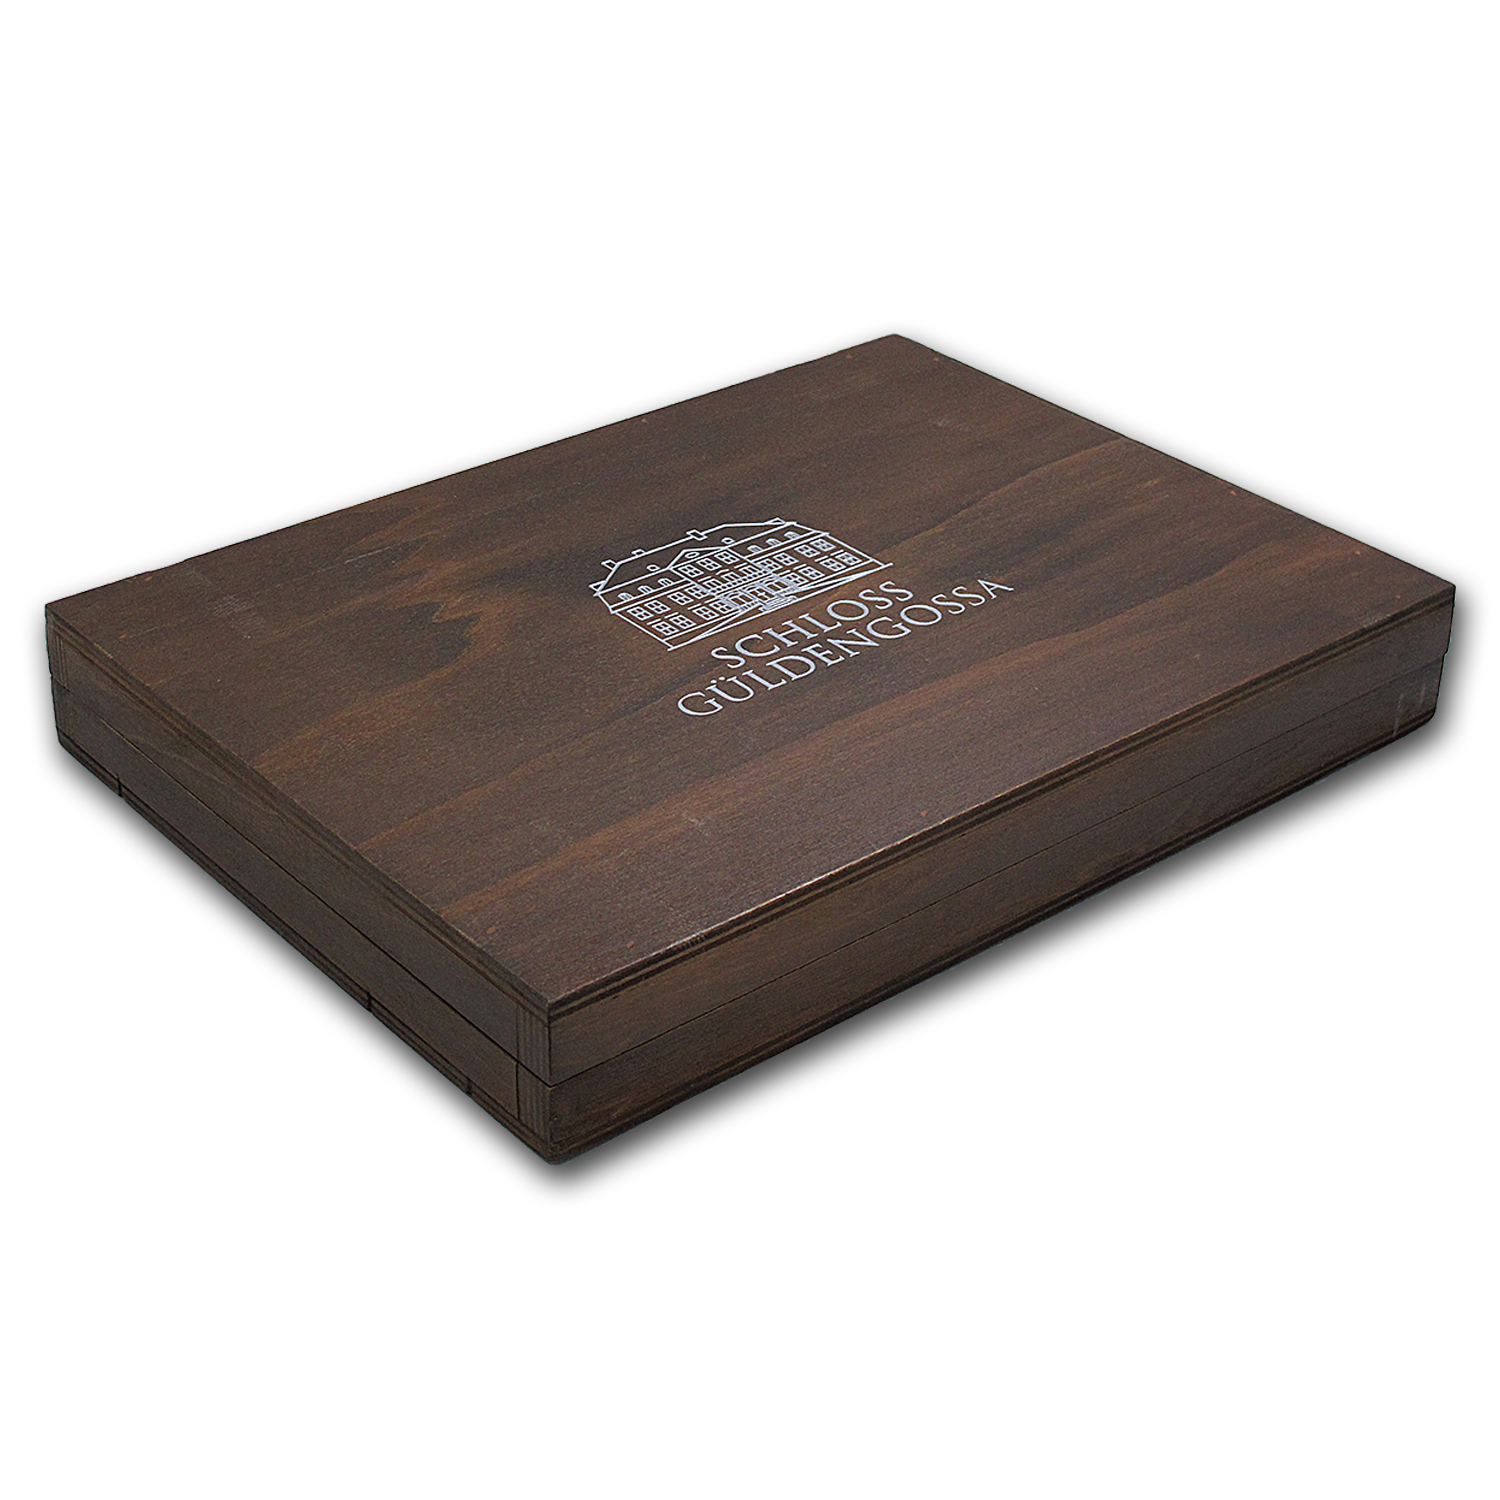 Geiger Edelmetalle Wood Storage Box for 10 oz Silver Bars